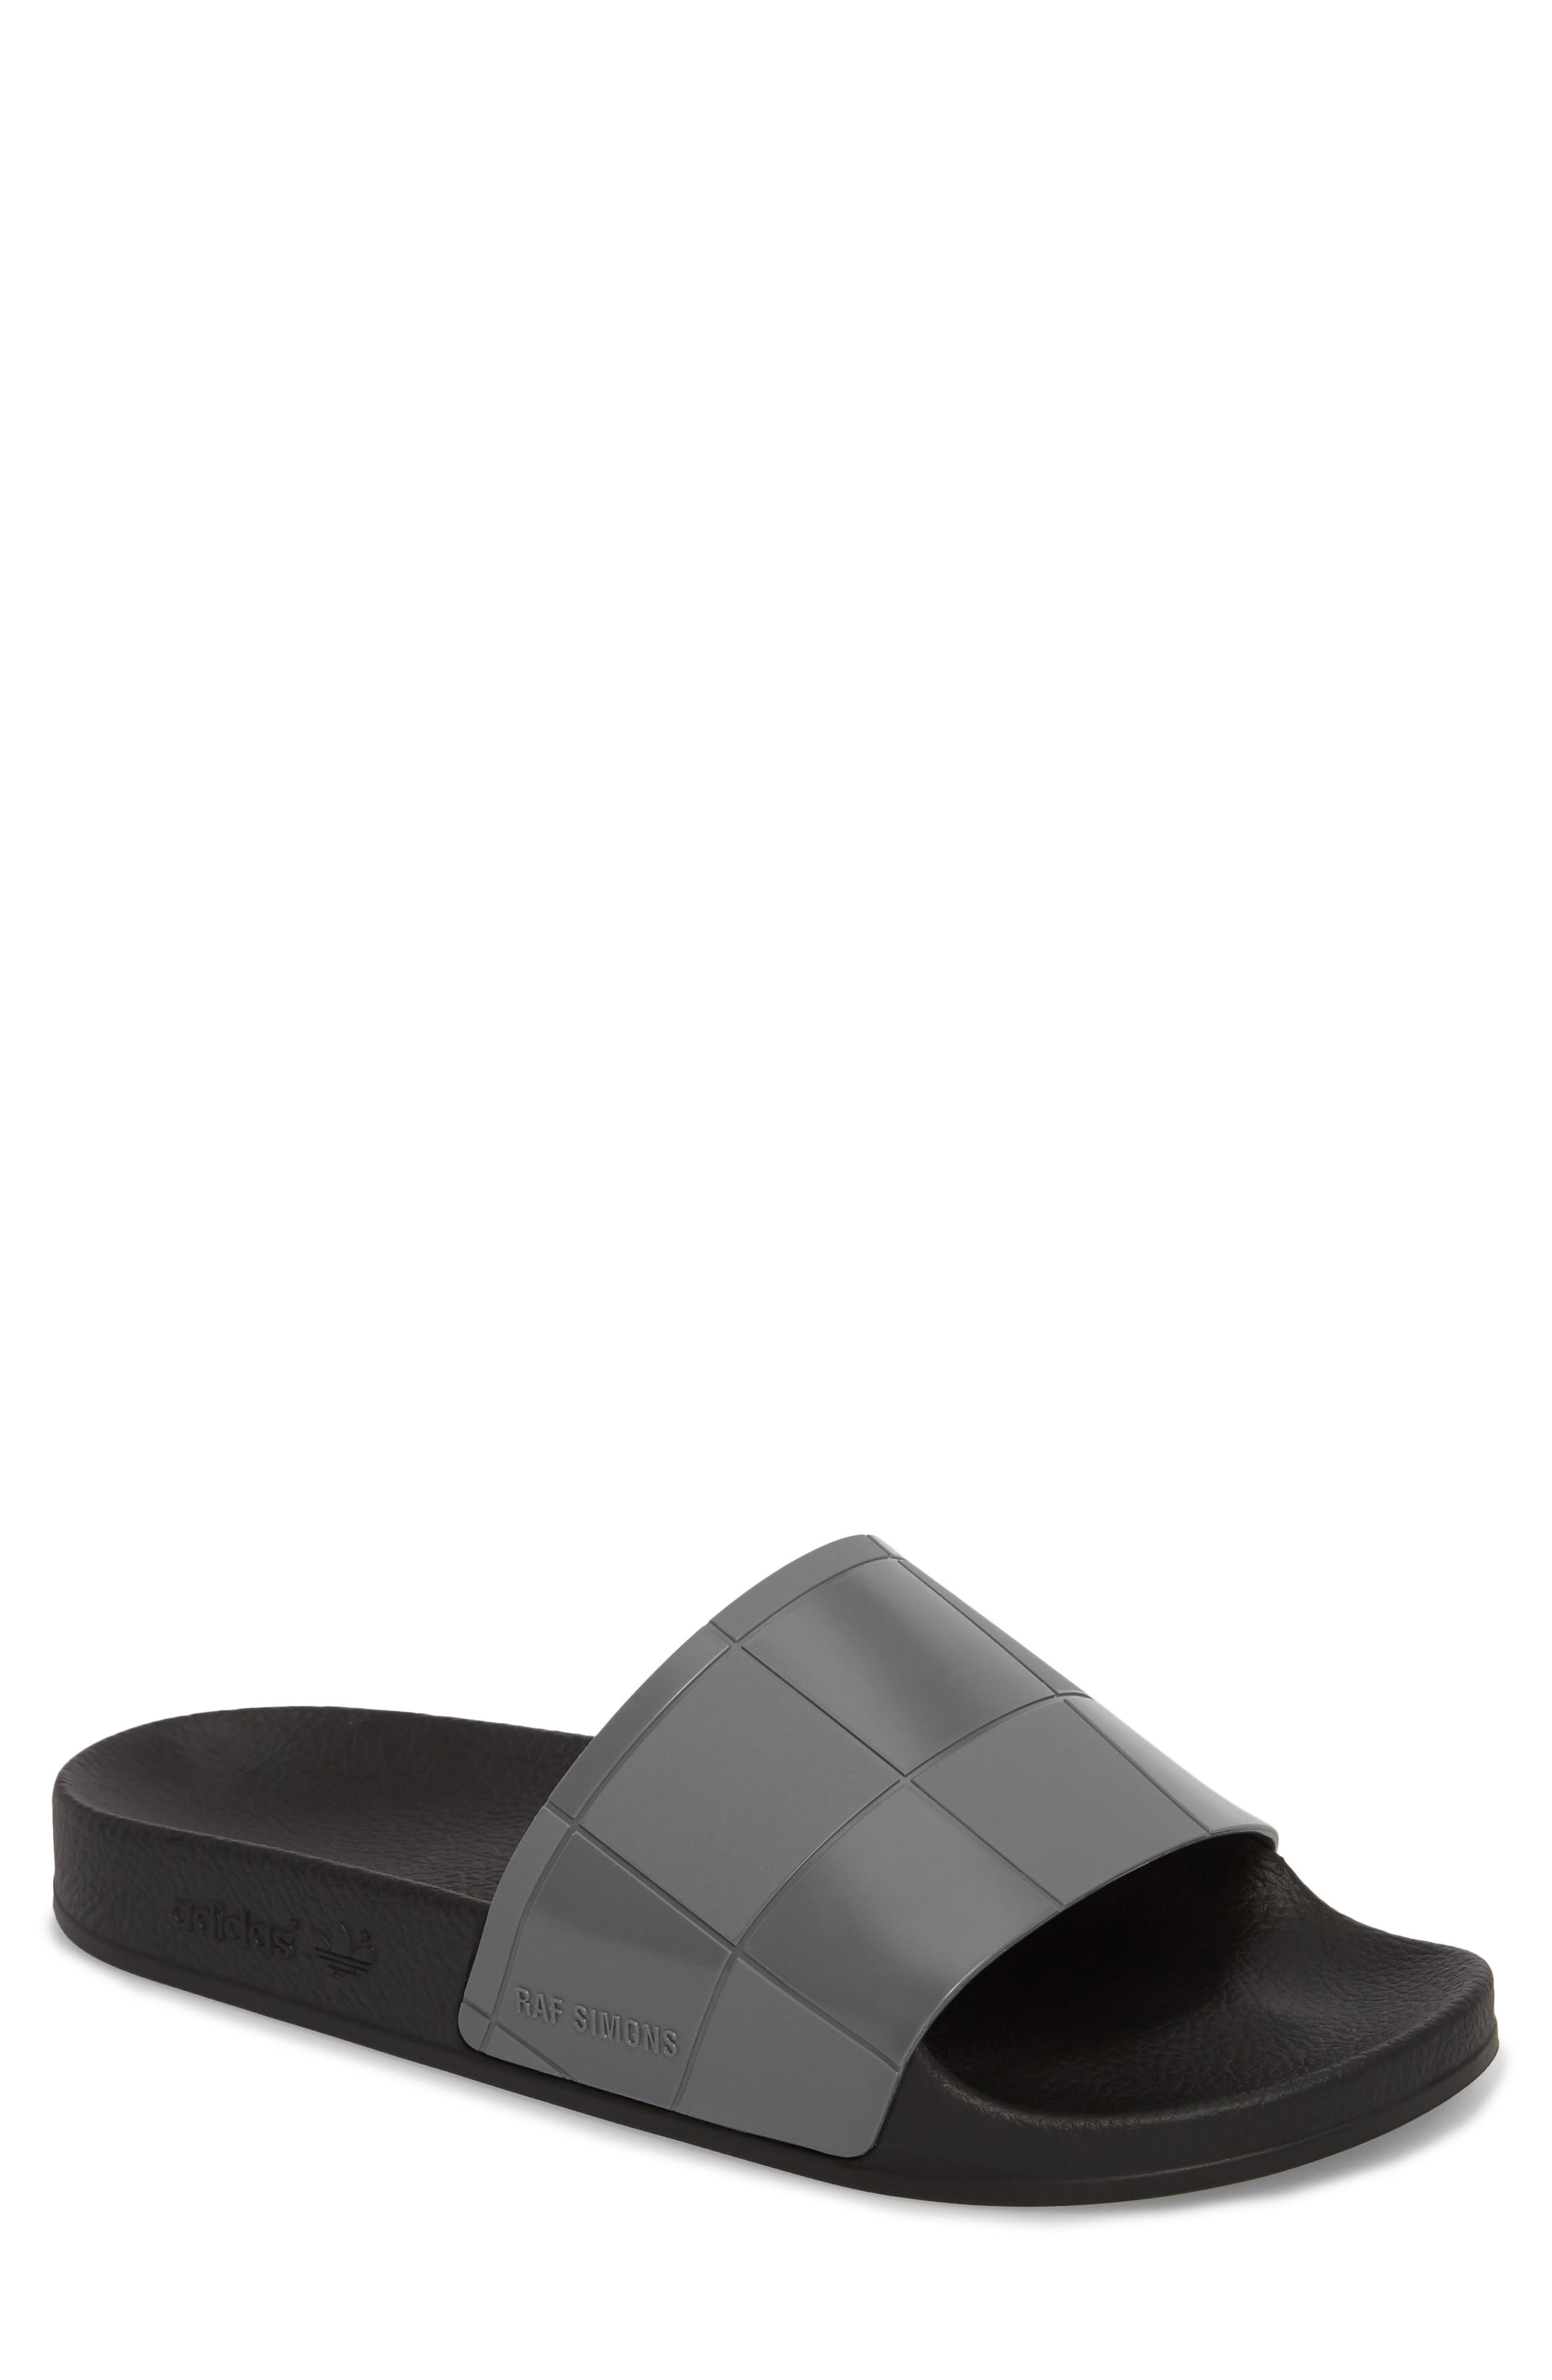 adidas by Raf Simons Adilette Checkerboard Sport Slide (Men)